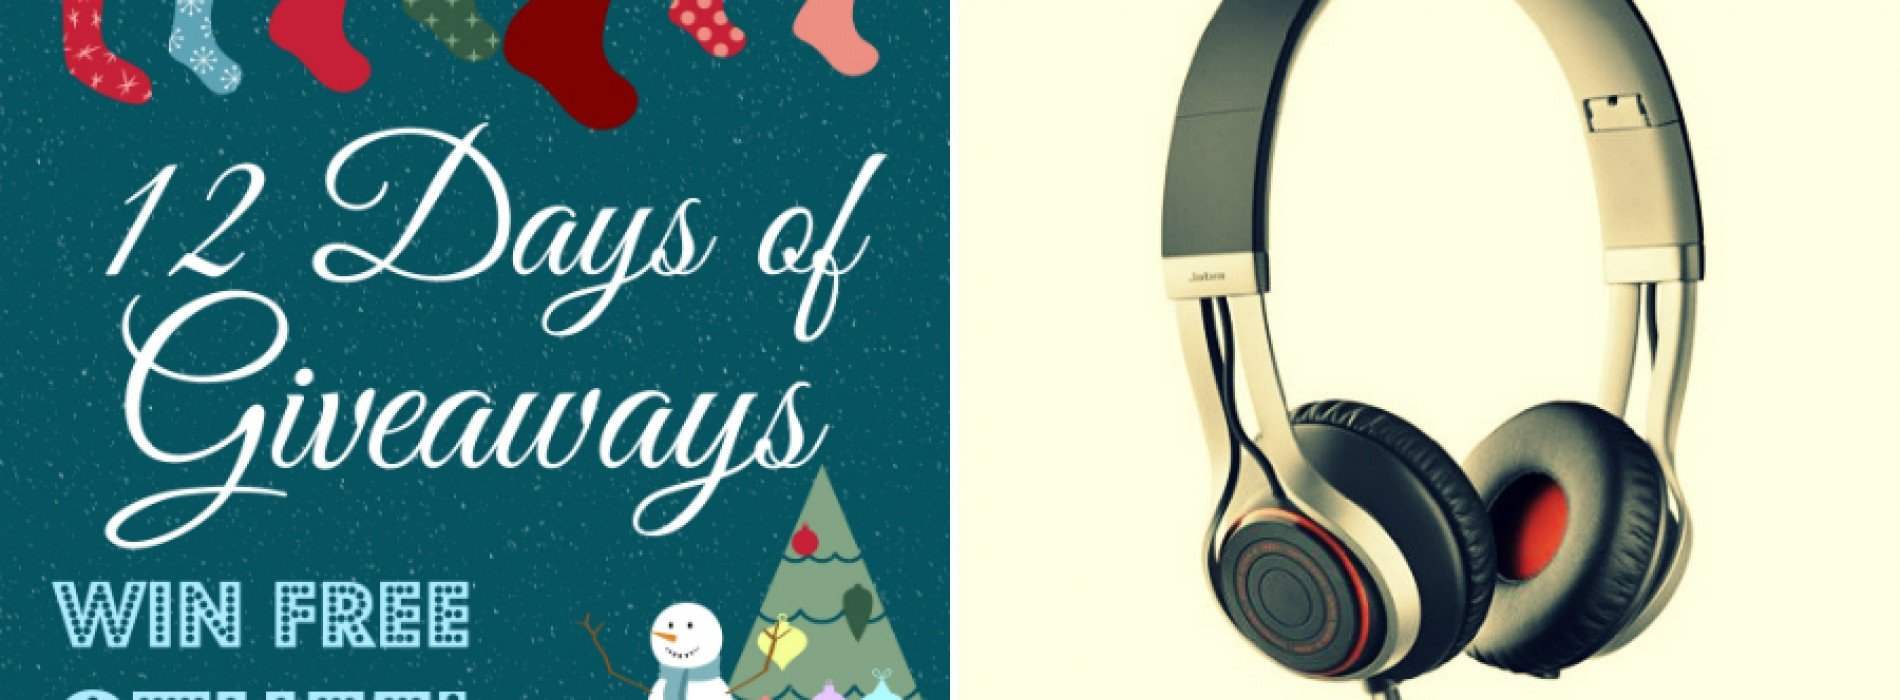 12 Days of Giveaways: Win Jabra REVO Corded stereo headphones (UPDATED)